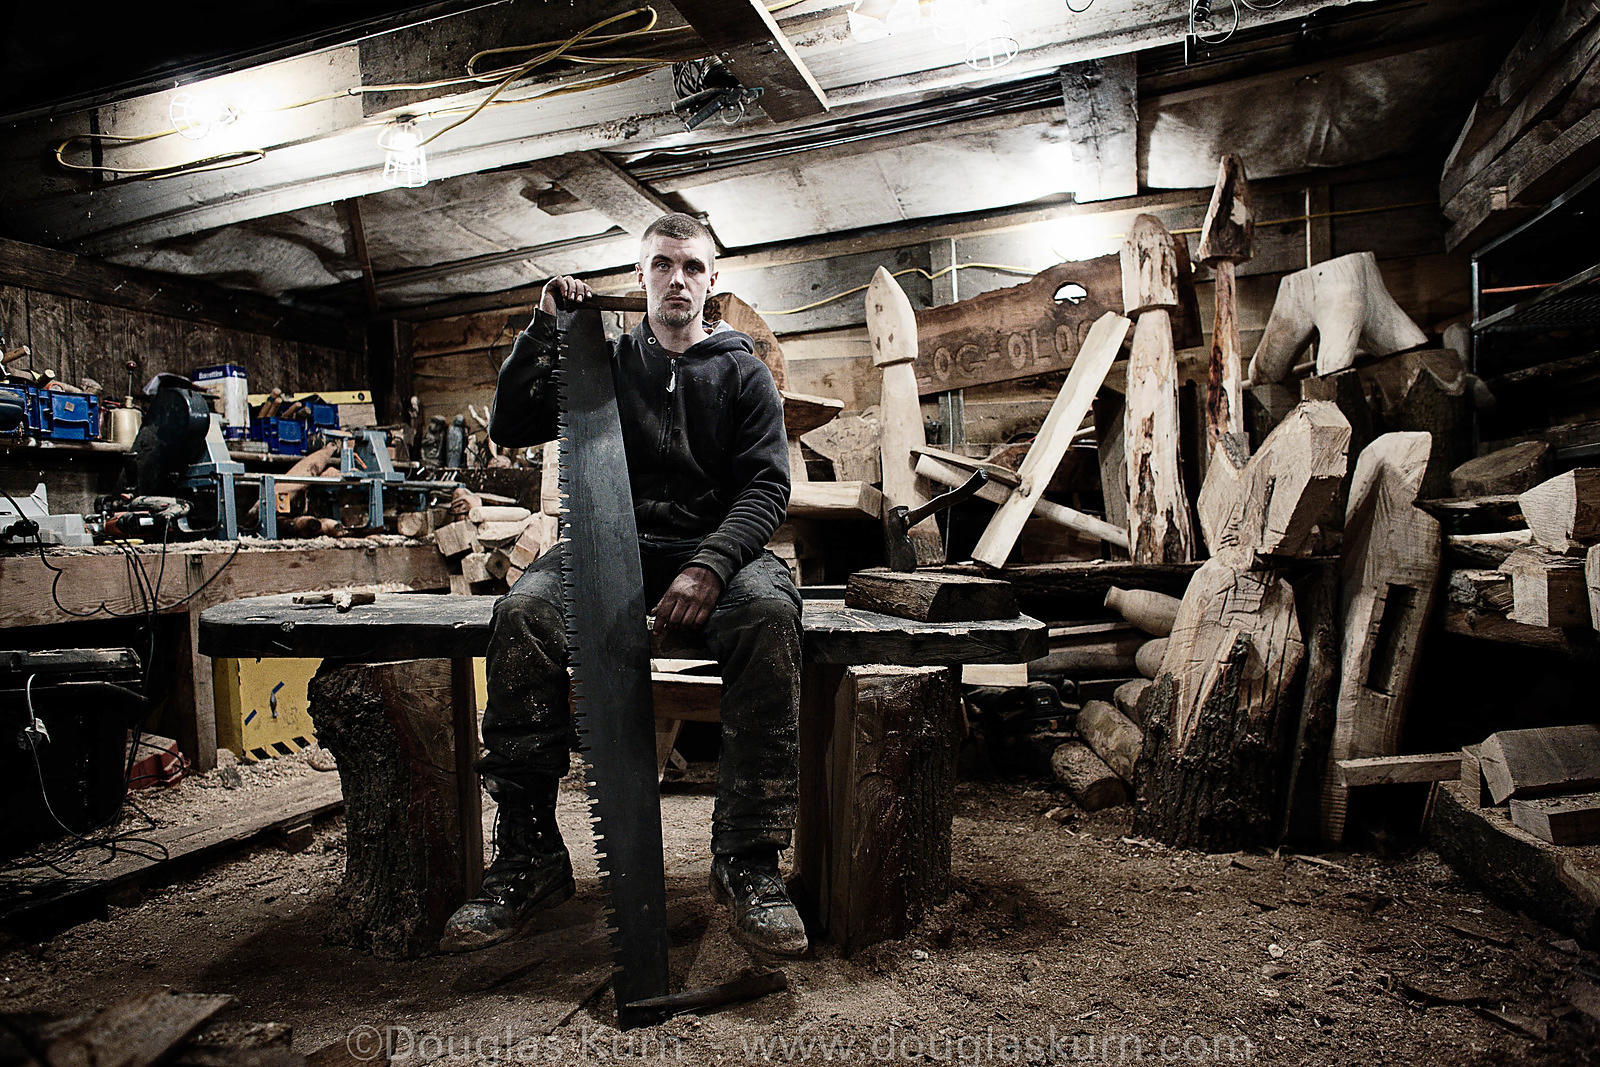 February 19th - Dan the tree surgeon in his workshop in Pirbright, Surrey